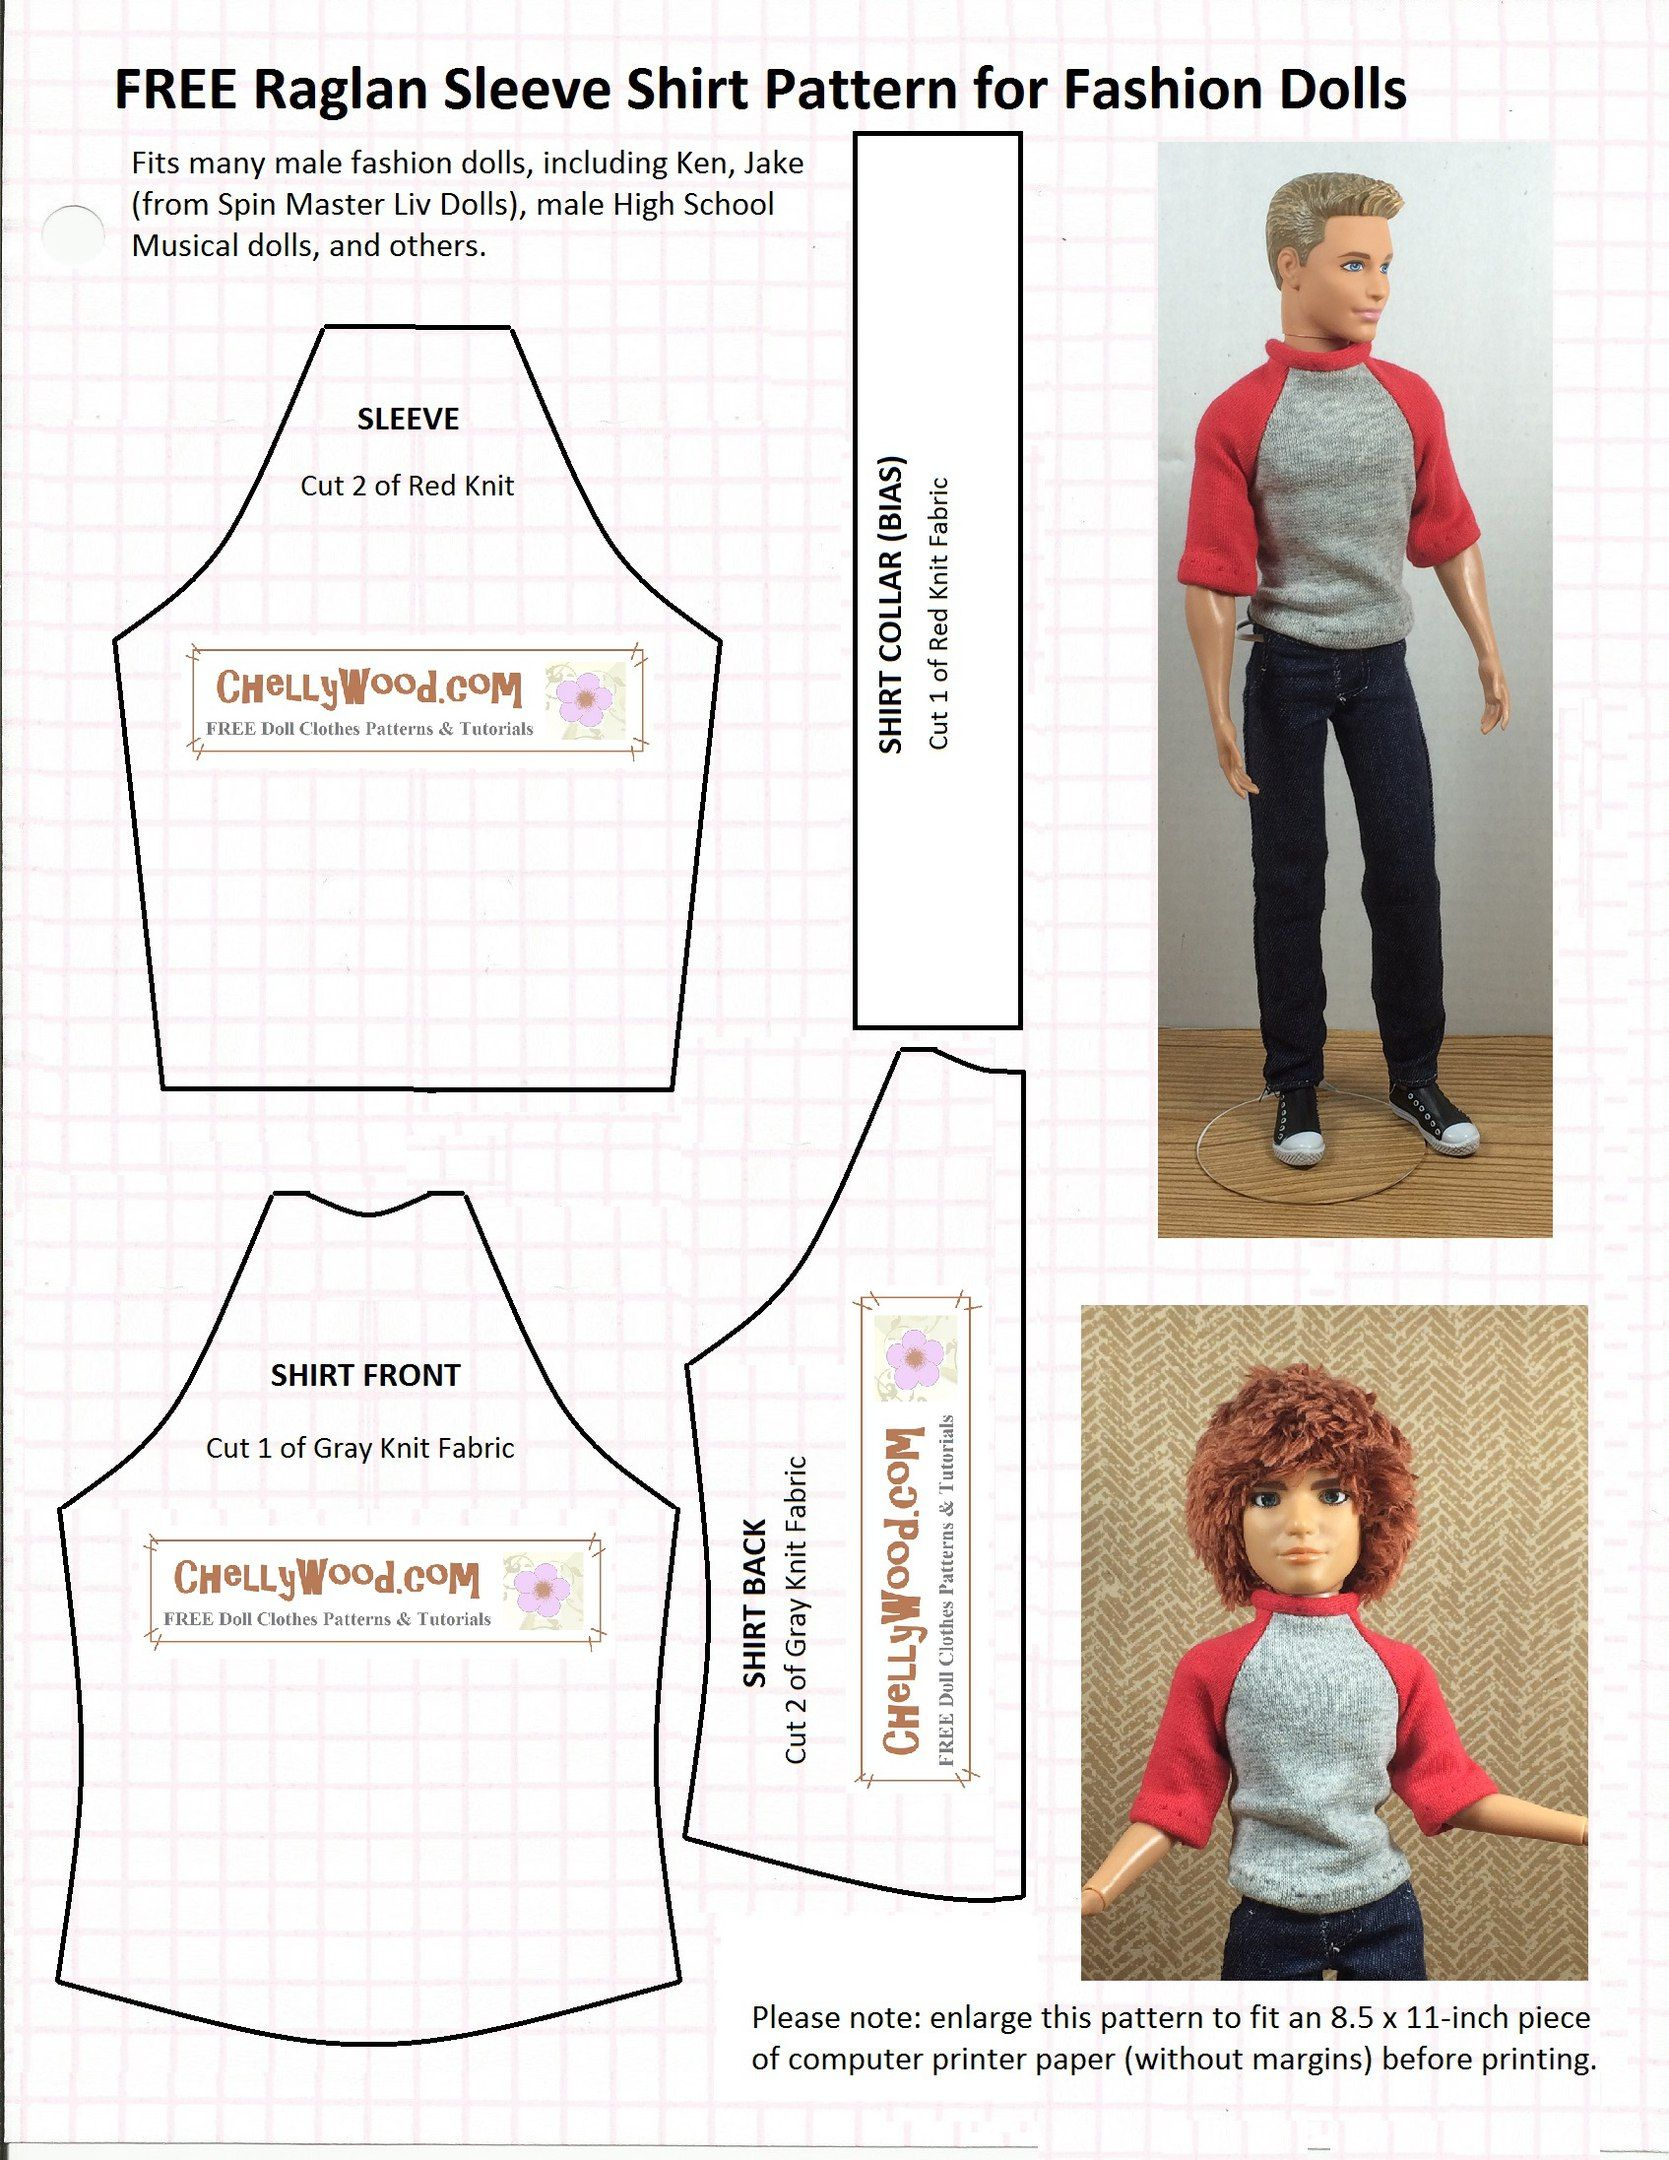 This is a picture of Obsessed Ken Doll Clothes Patterns